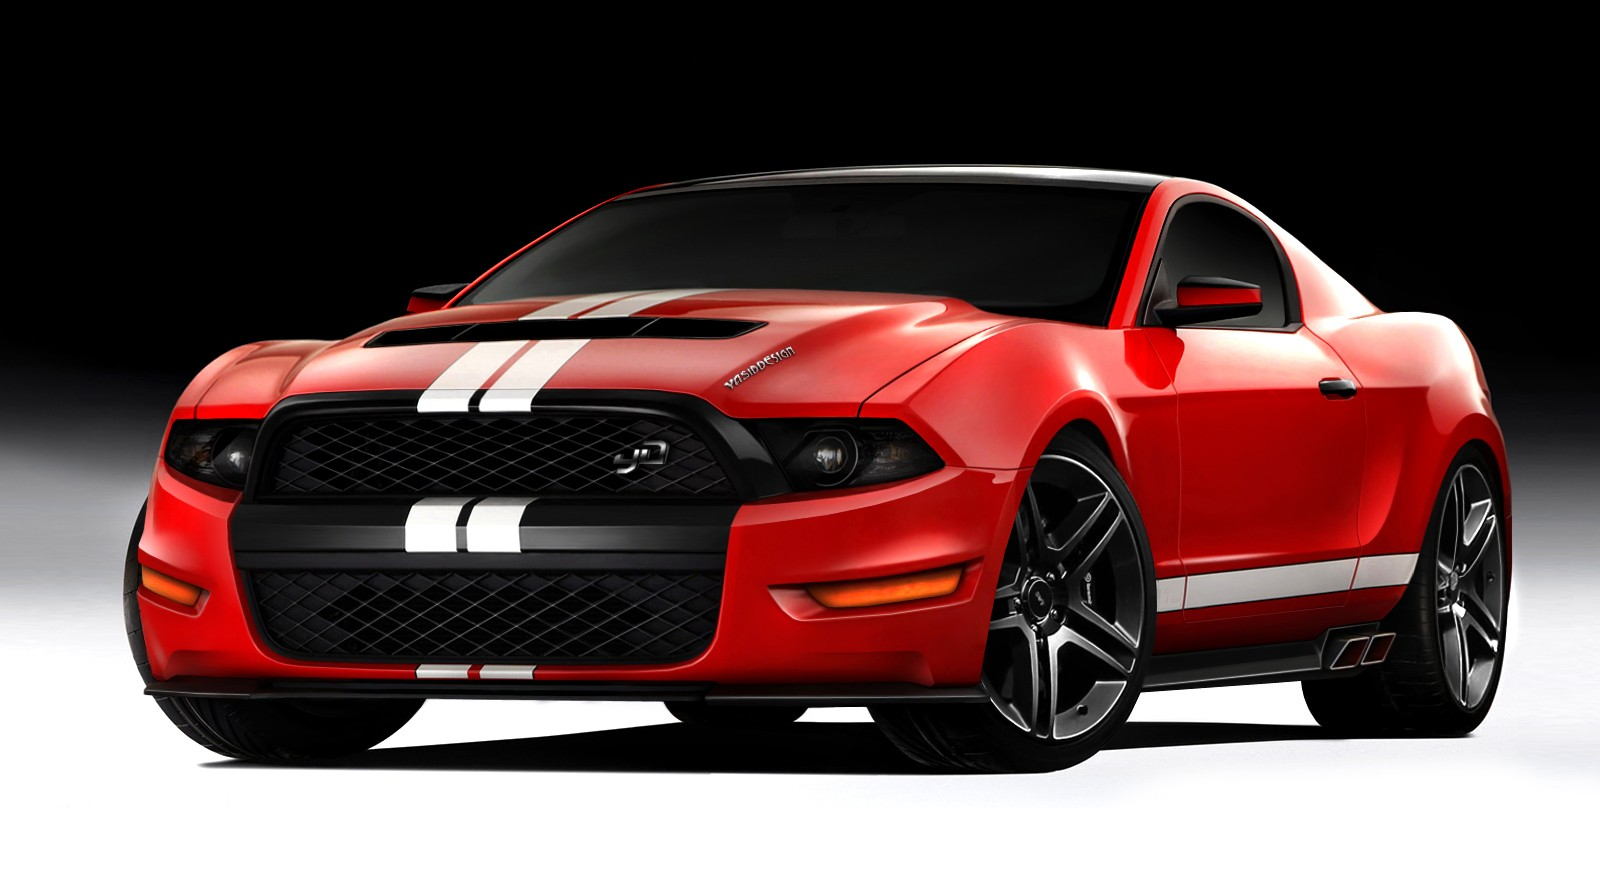 Find Latest 2015 Ford Mustang Gt Premium Coupe Reviews and New Release 1600x892